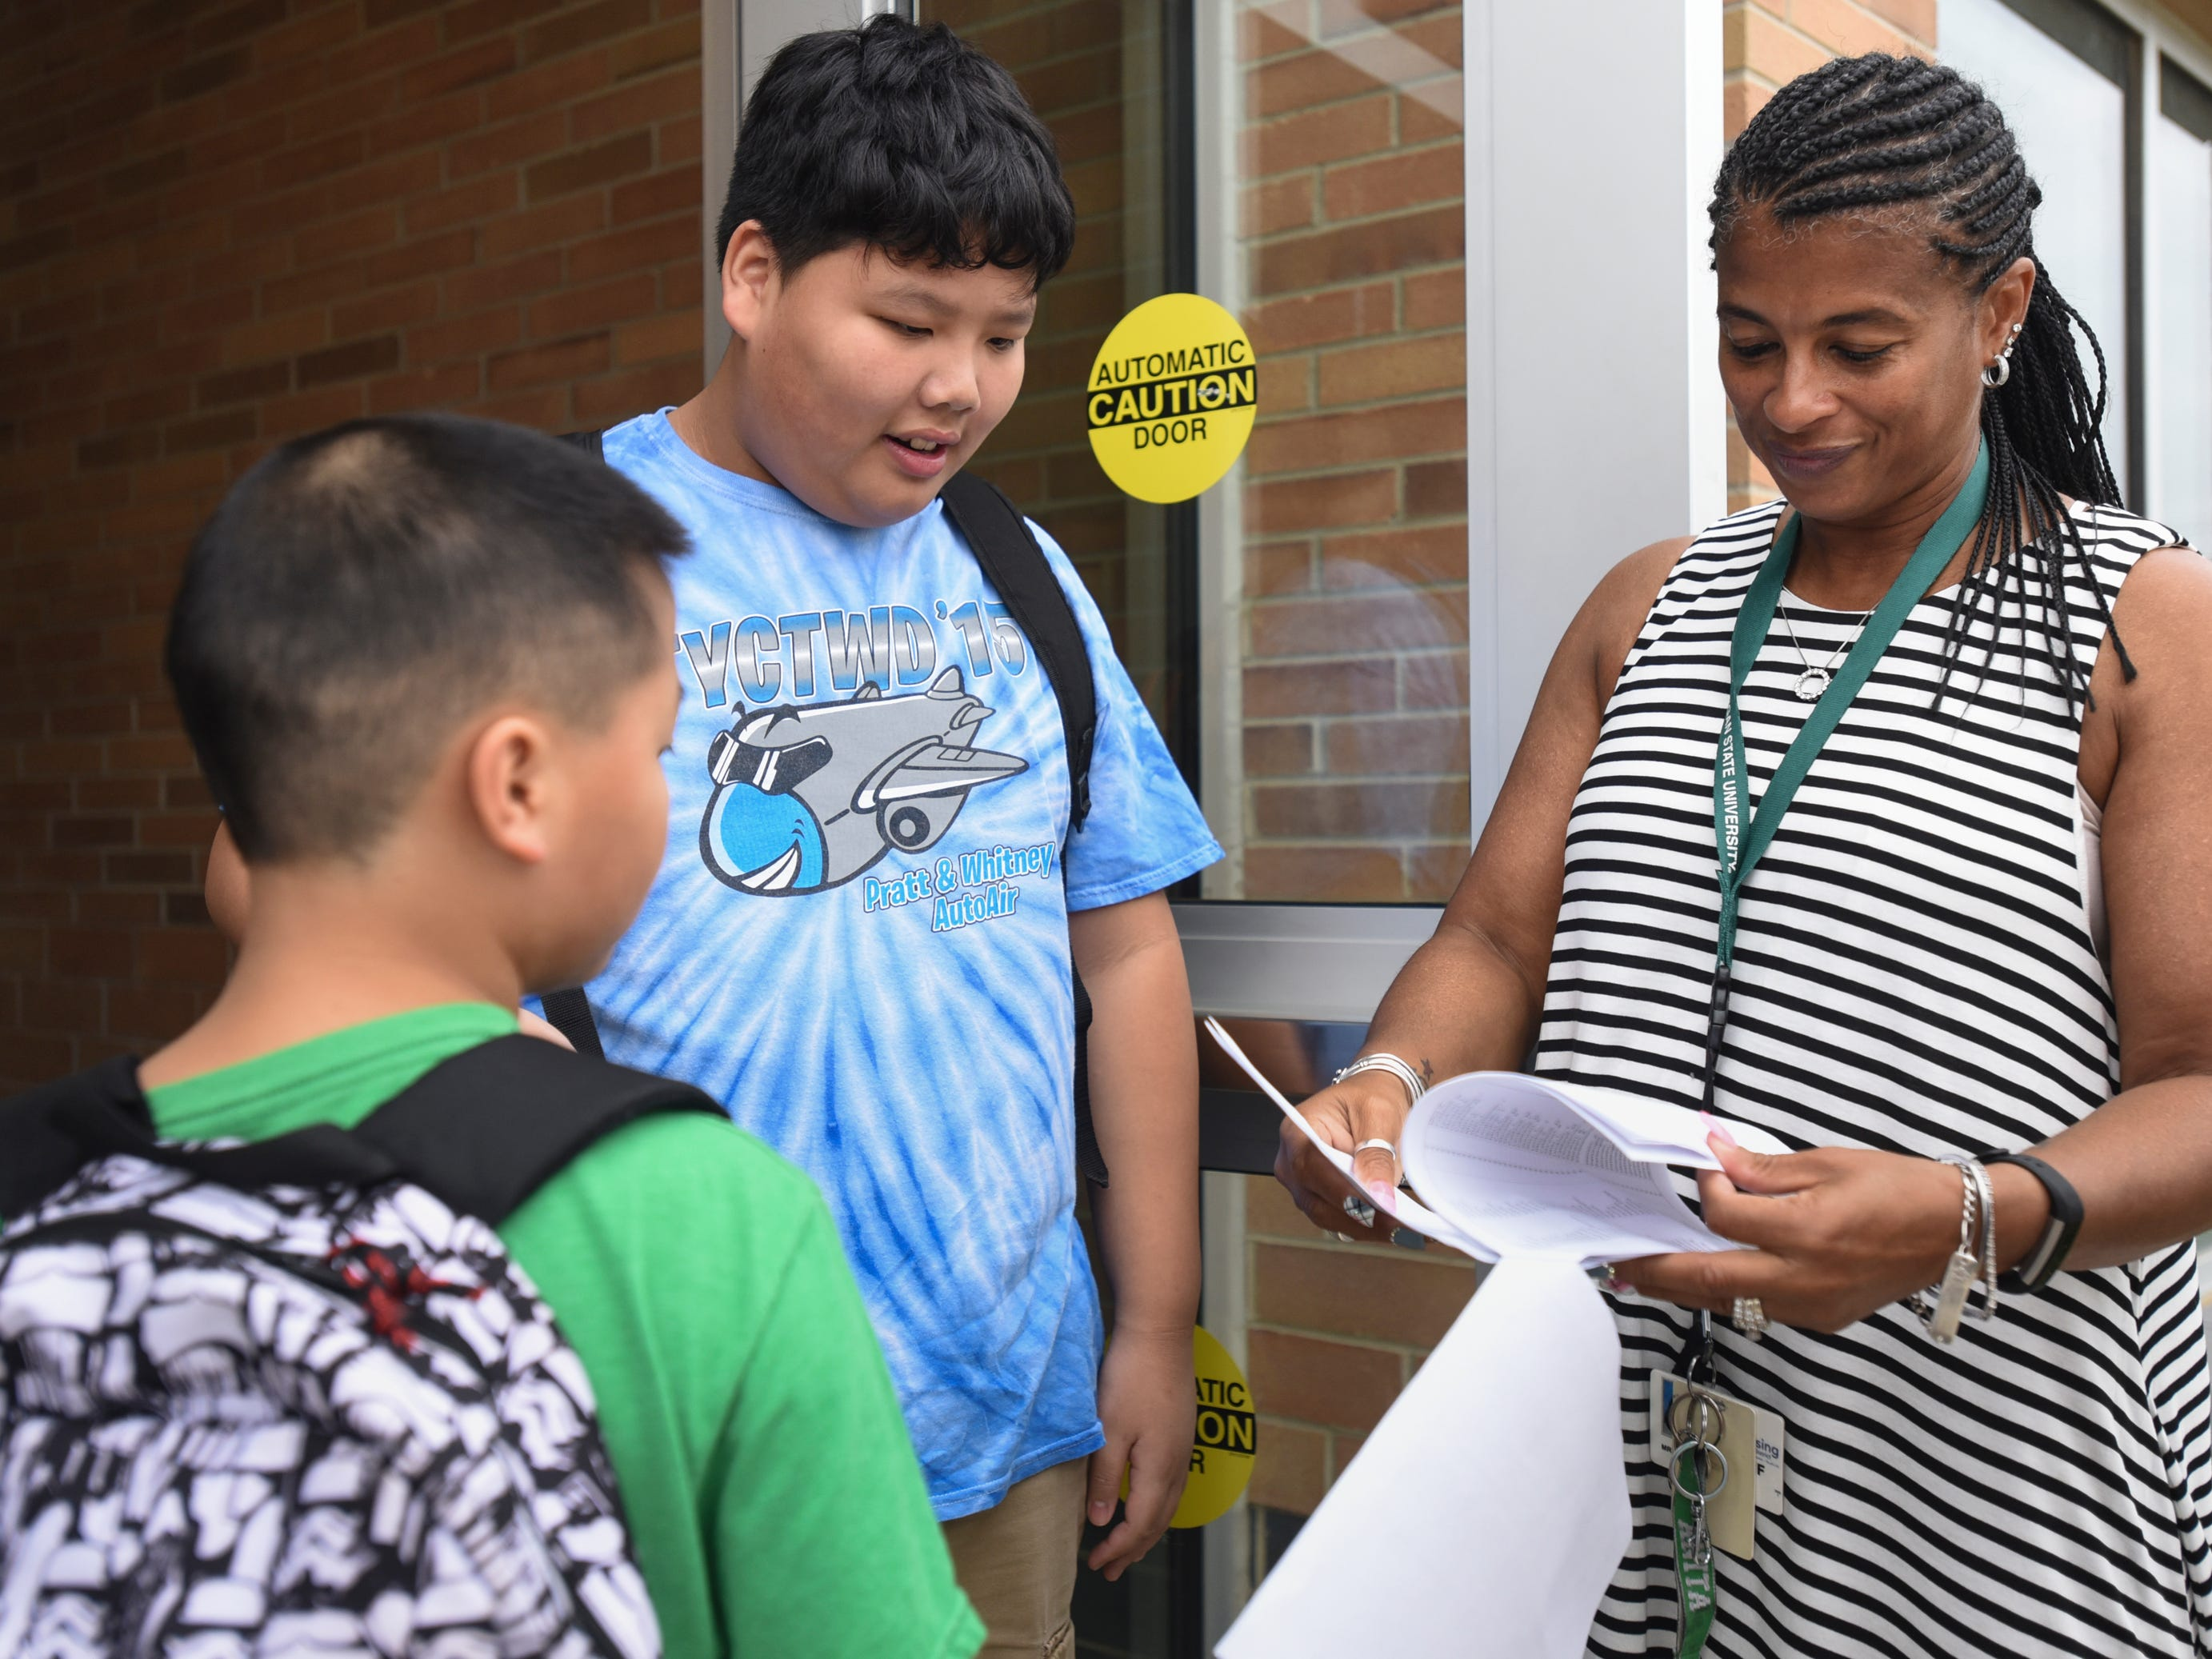 Pattengill teacher Anita Alston-Palmore helps direct fifth graders Yue Yang Pheng, middle, and Yengwa Yang to their classes Monday morning, Aug. 27, 2018, at the newly-renovated Pattengill Biotechnical Magnet School in Lansing.